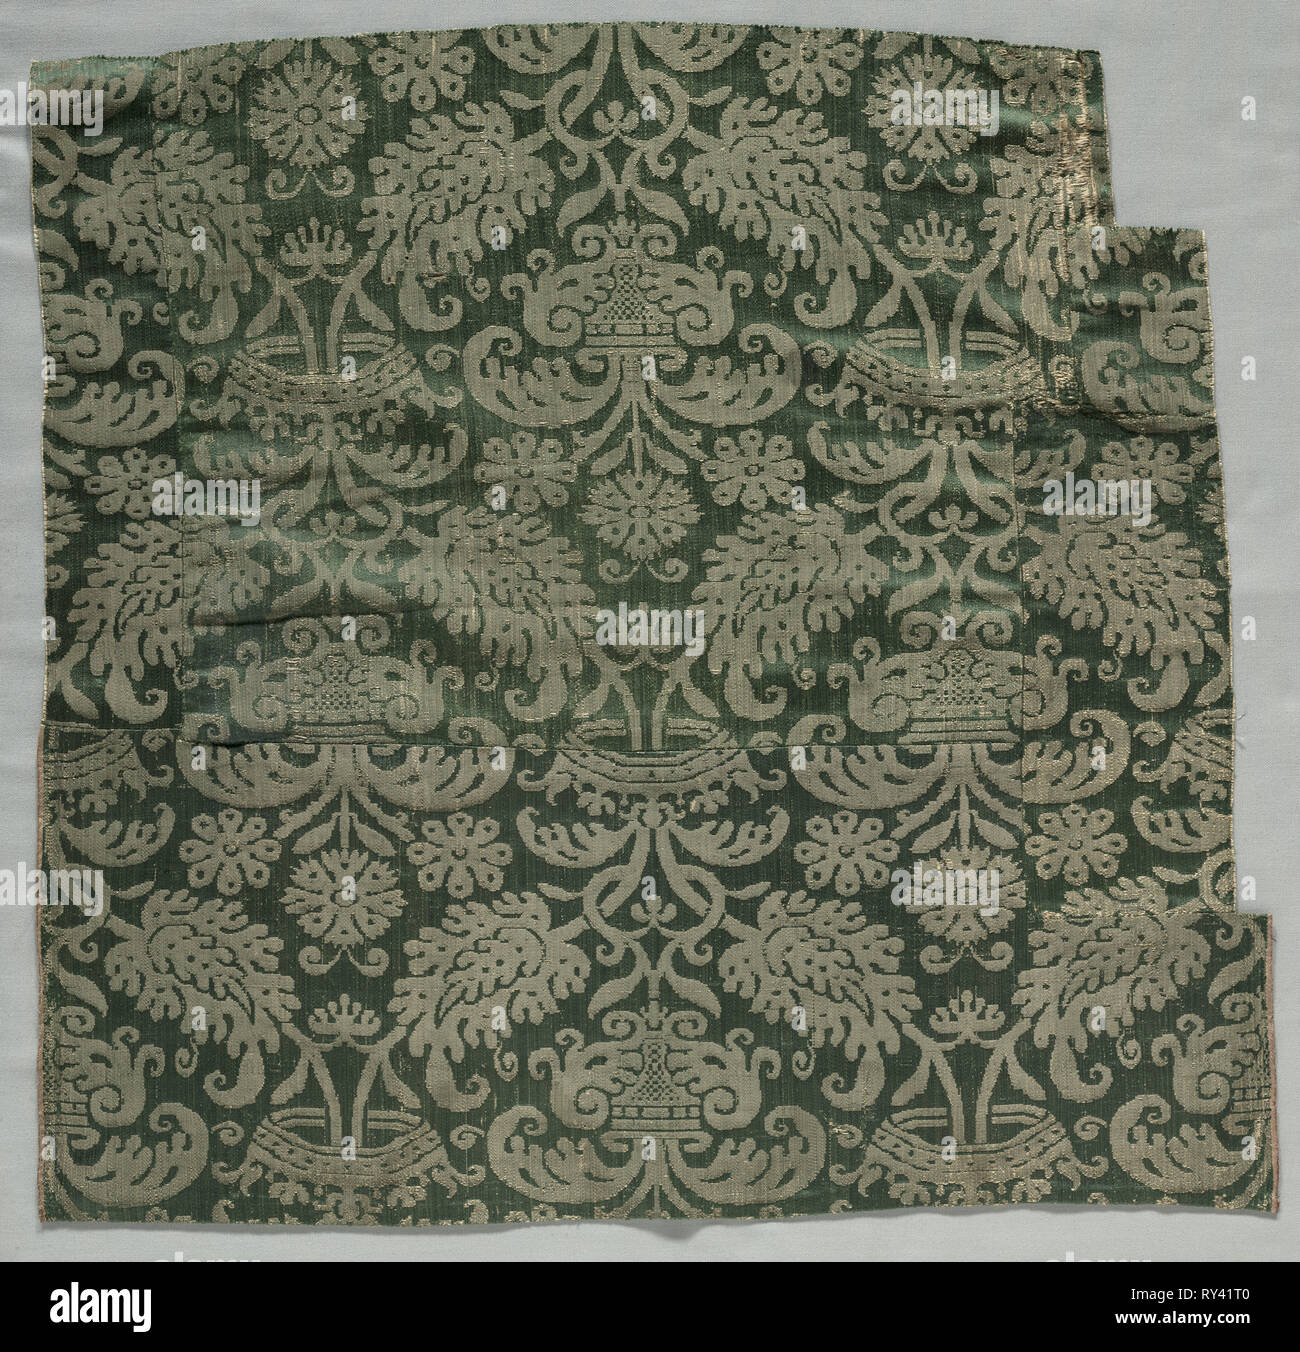 Two Lengths of Textile, 1500s. Italy or Spain, 16th century. Damask, silk; overall: 54.2 x 56 cm (21 5/16 x 22 1/16 in - Stock Image